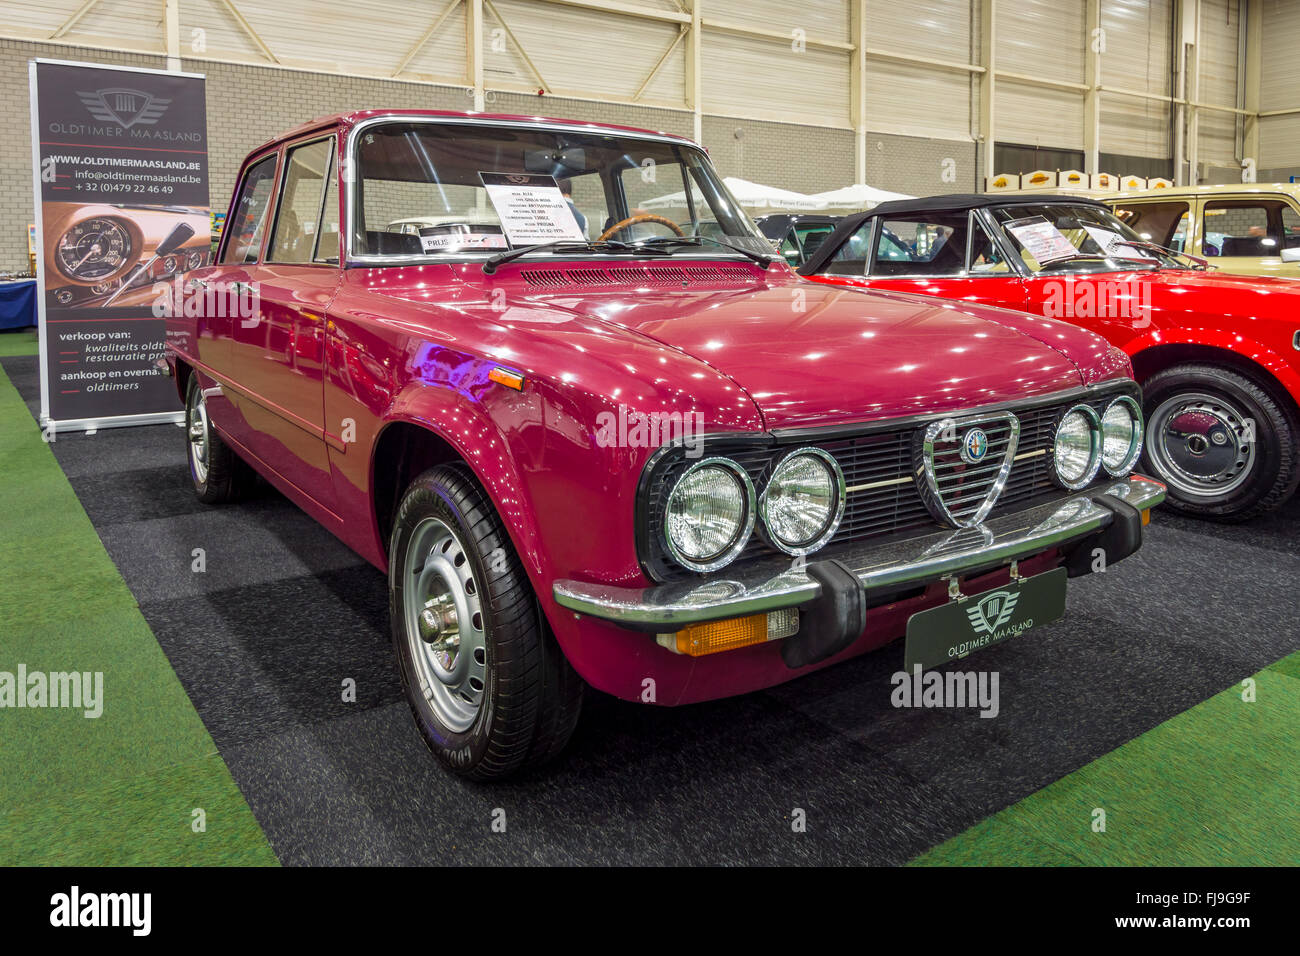 kompakte executive auto alfa romeo giulia nuova super 1300 1975 stockfoto bild 97326027 alamy. Black Bedroom Furniture Sets. Home Design Ideas